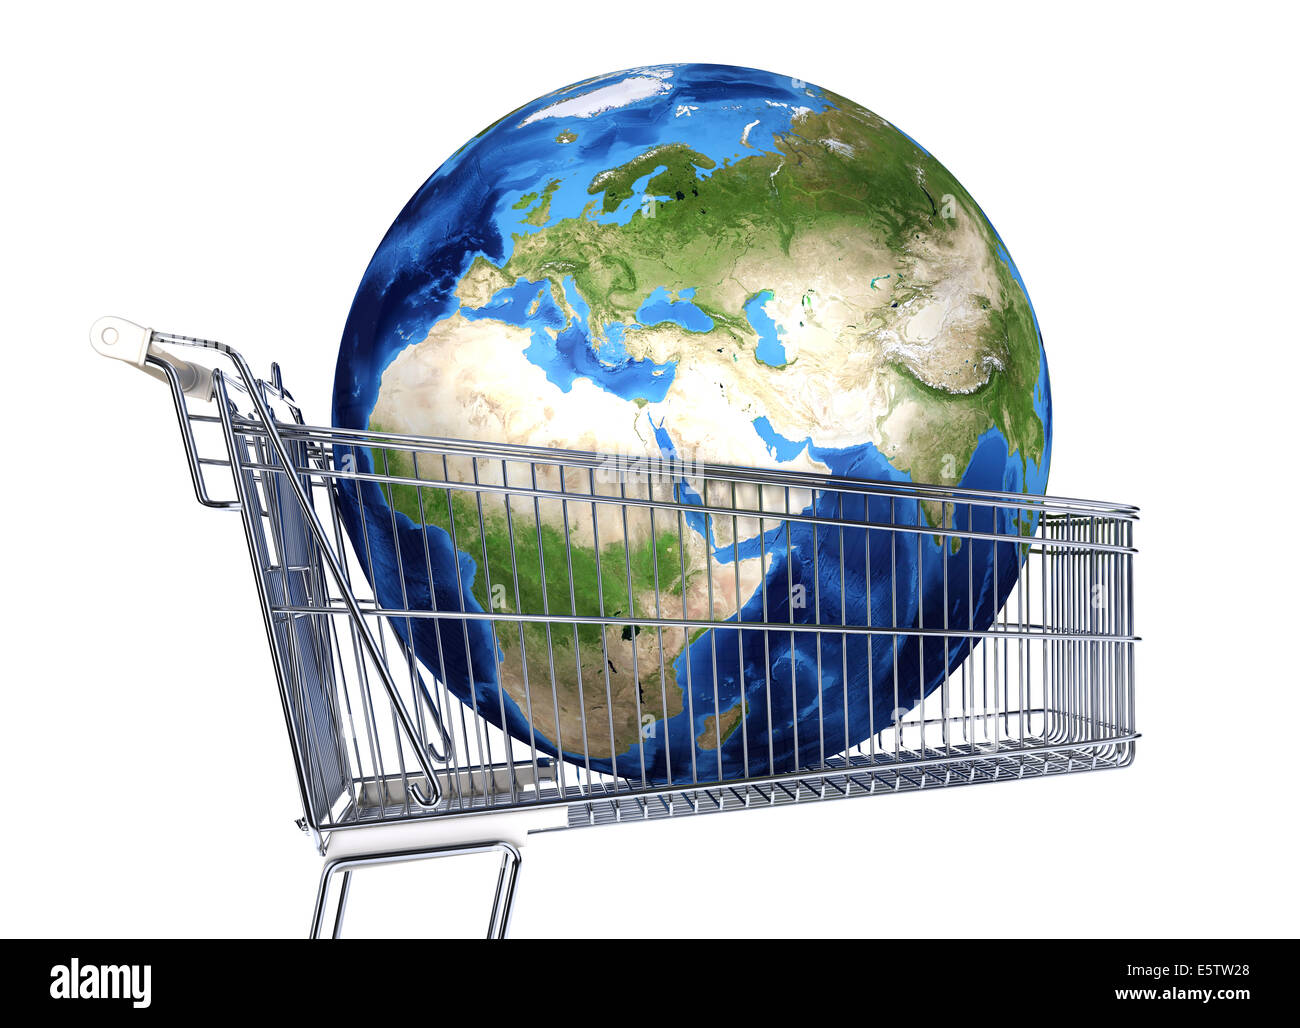 Planet Earth into supermarket trolley. Africa, Europe and Asia view. On white background. clipping path included. - Stock Image